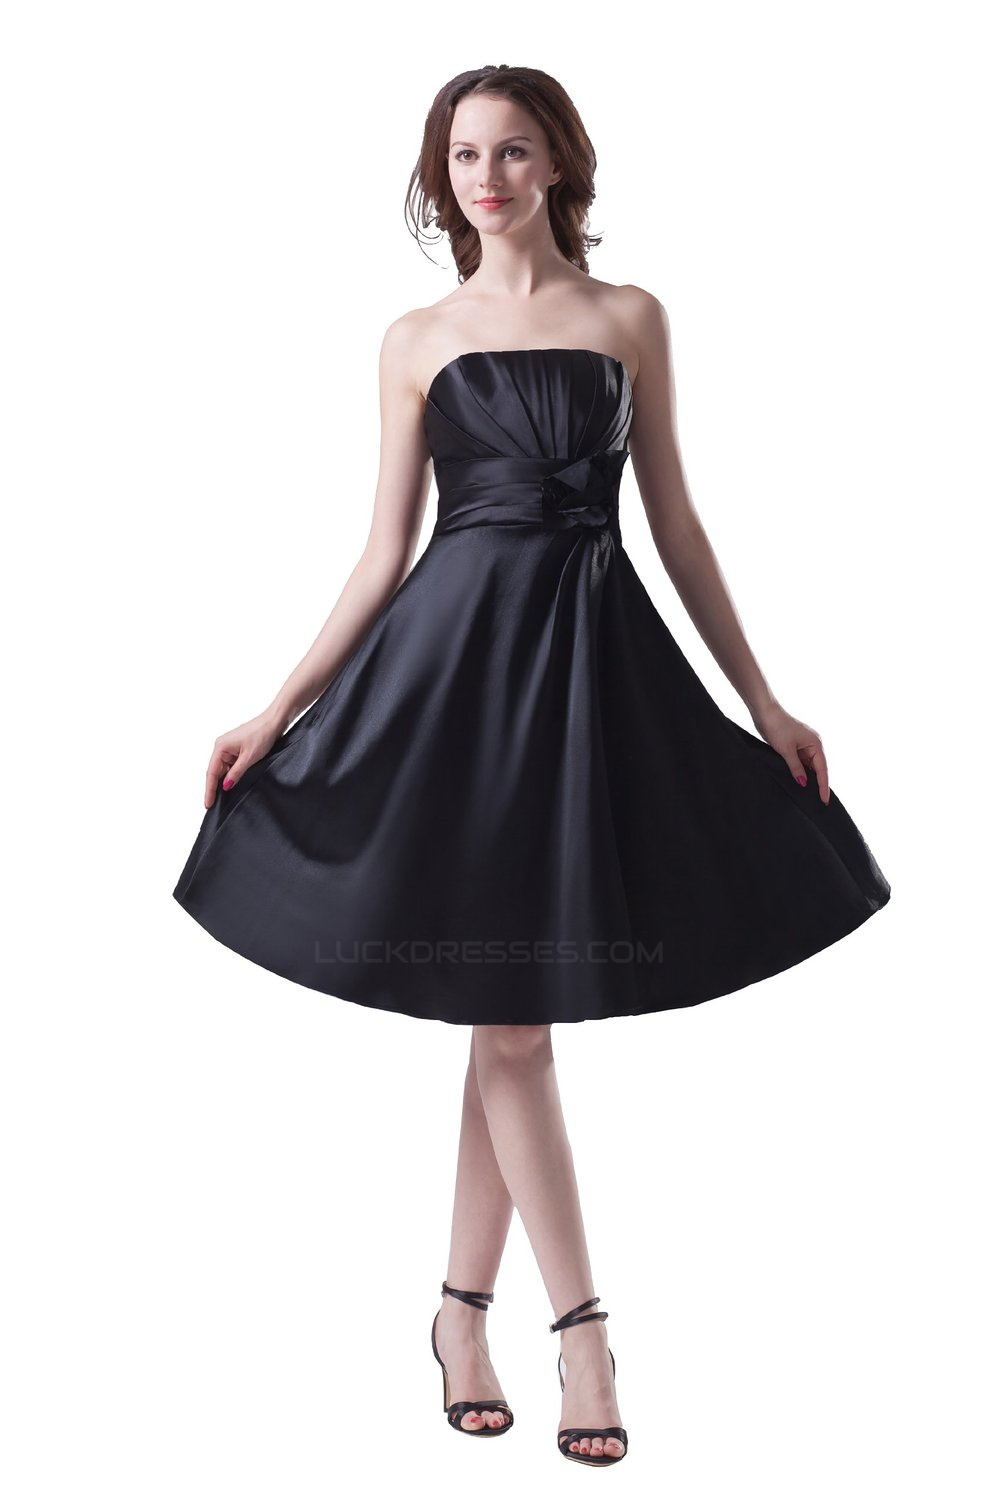 e7900572c6de A-Line Strapless Short Black Satin Bridesmaid Dresses/Wedding Party Dresses  BD010116